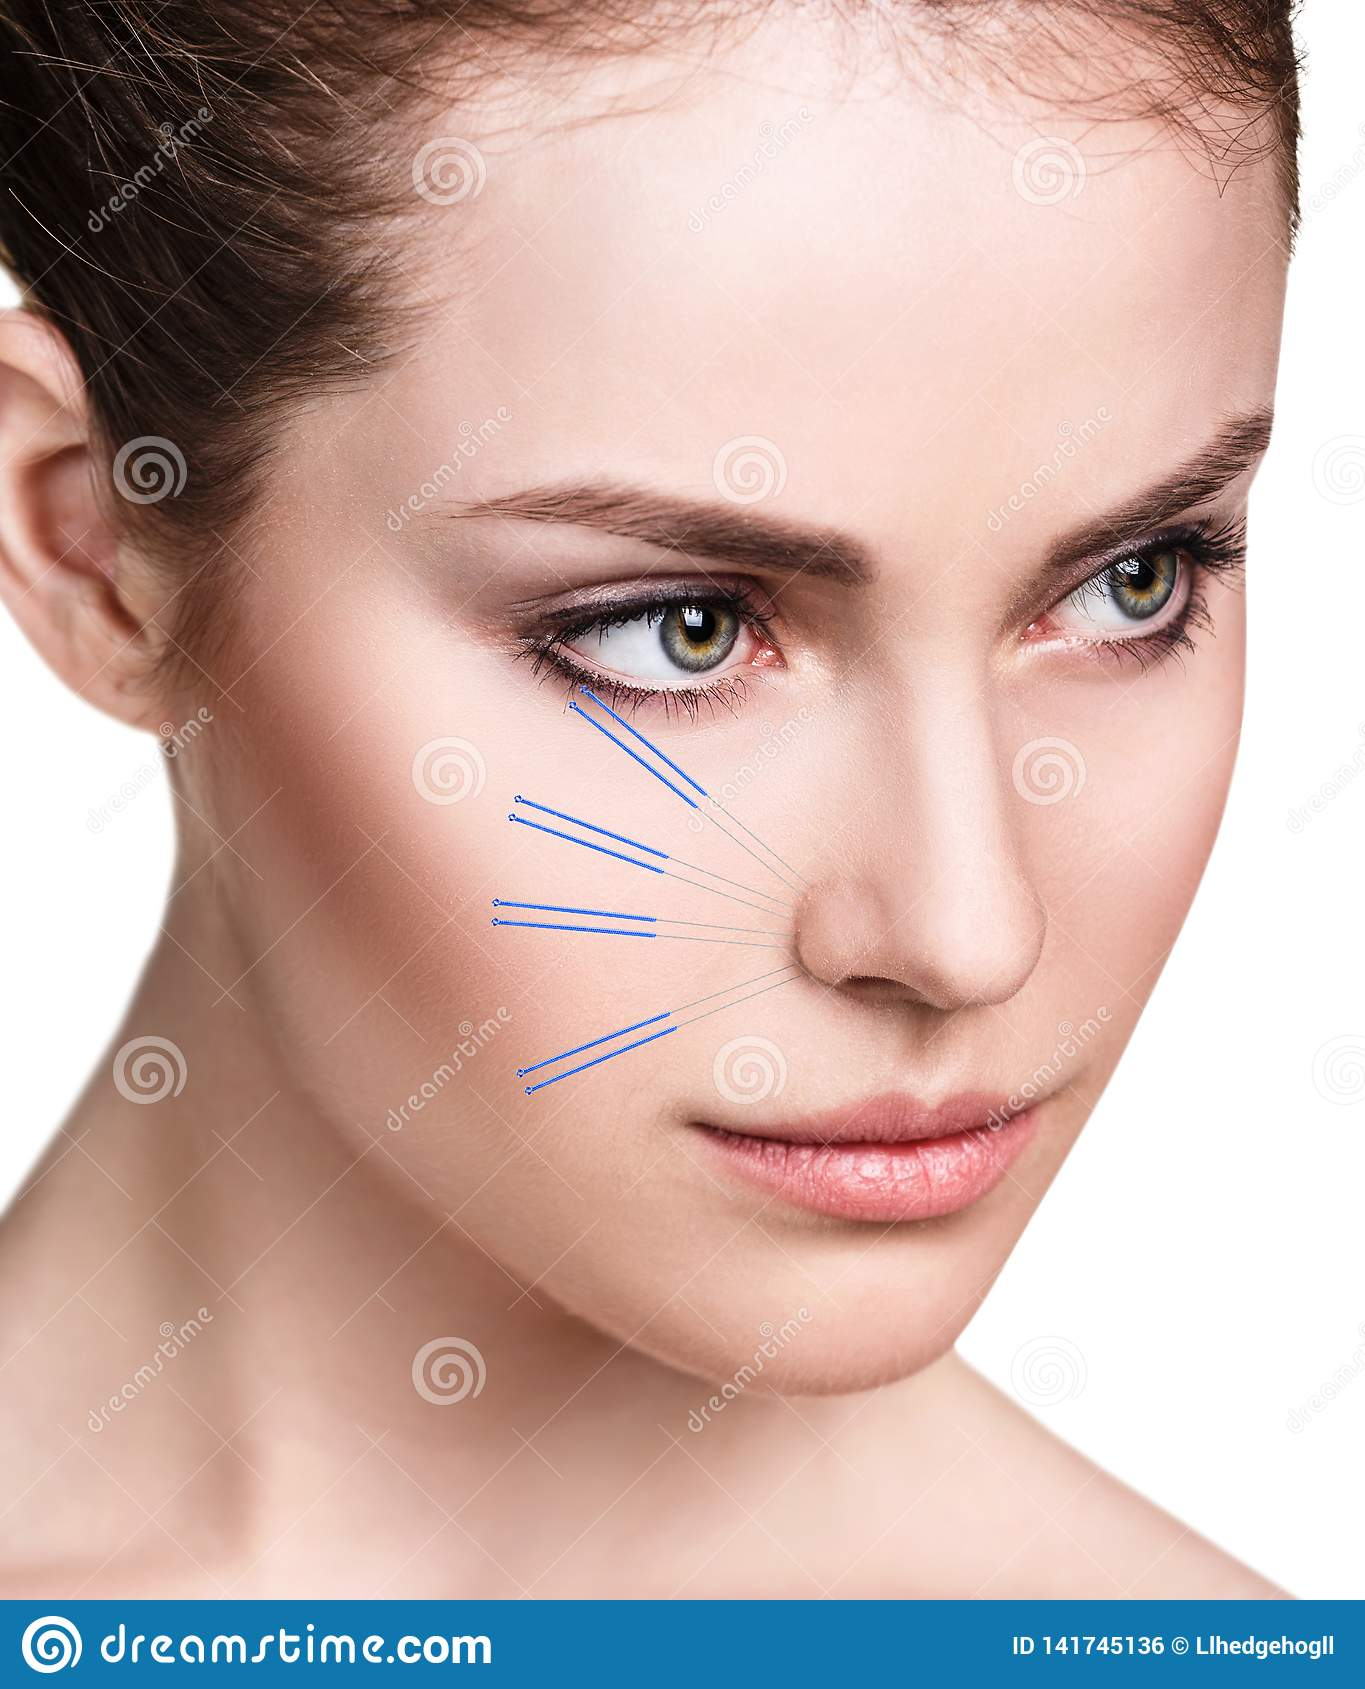 Woman Undergoing Acupuncture Treatment. Stock Photo ...